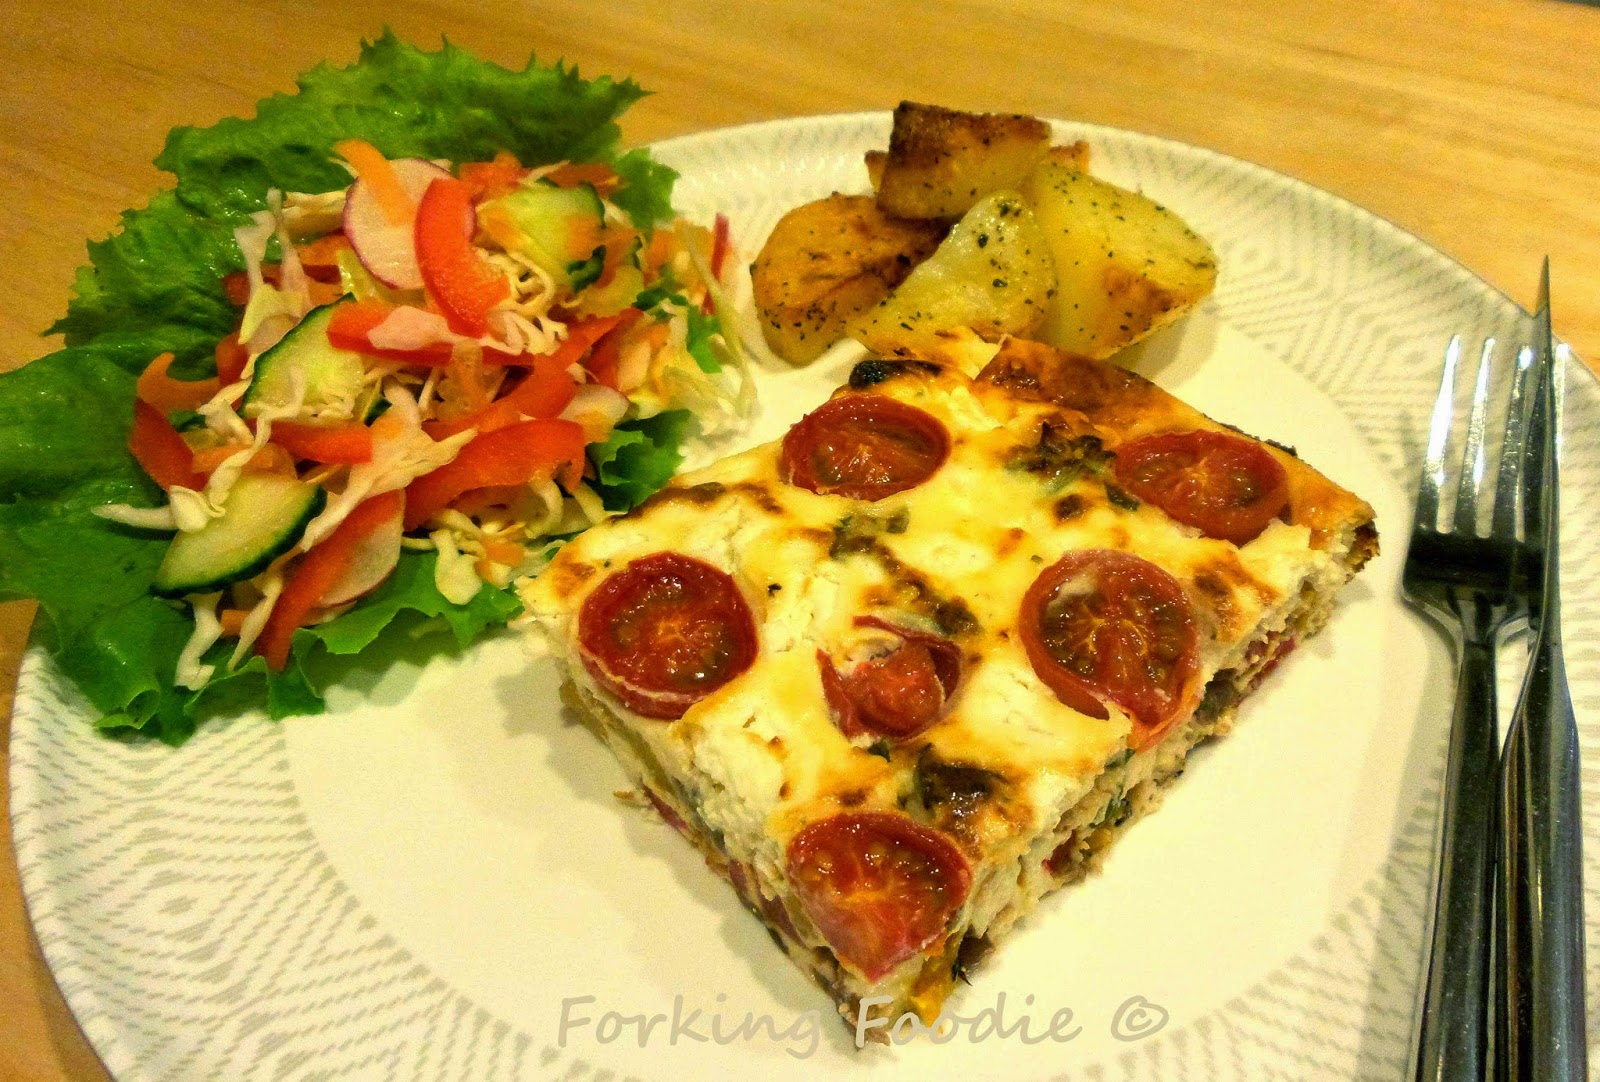 Forking foodie canap s party food and lunchbox treats for Canape quiche recipe